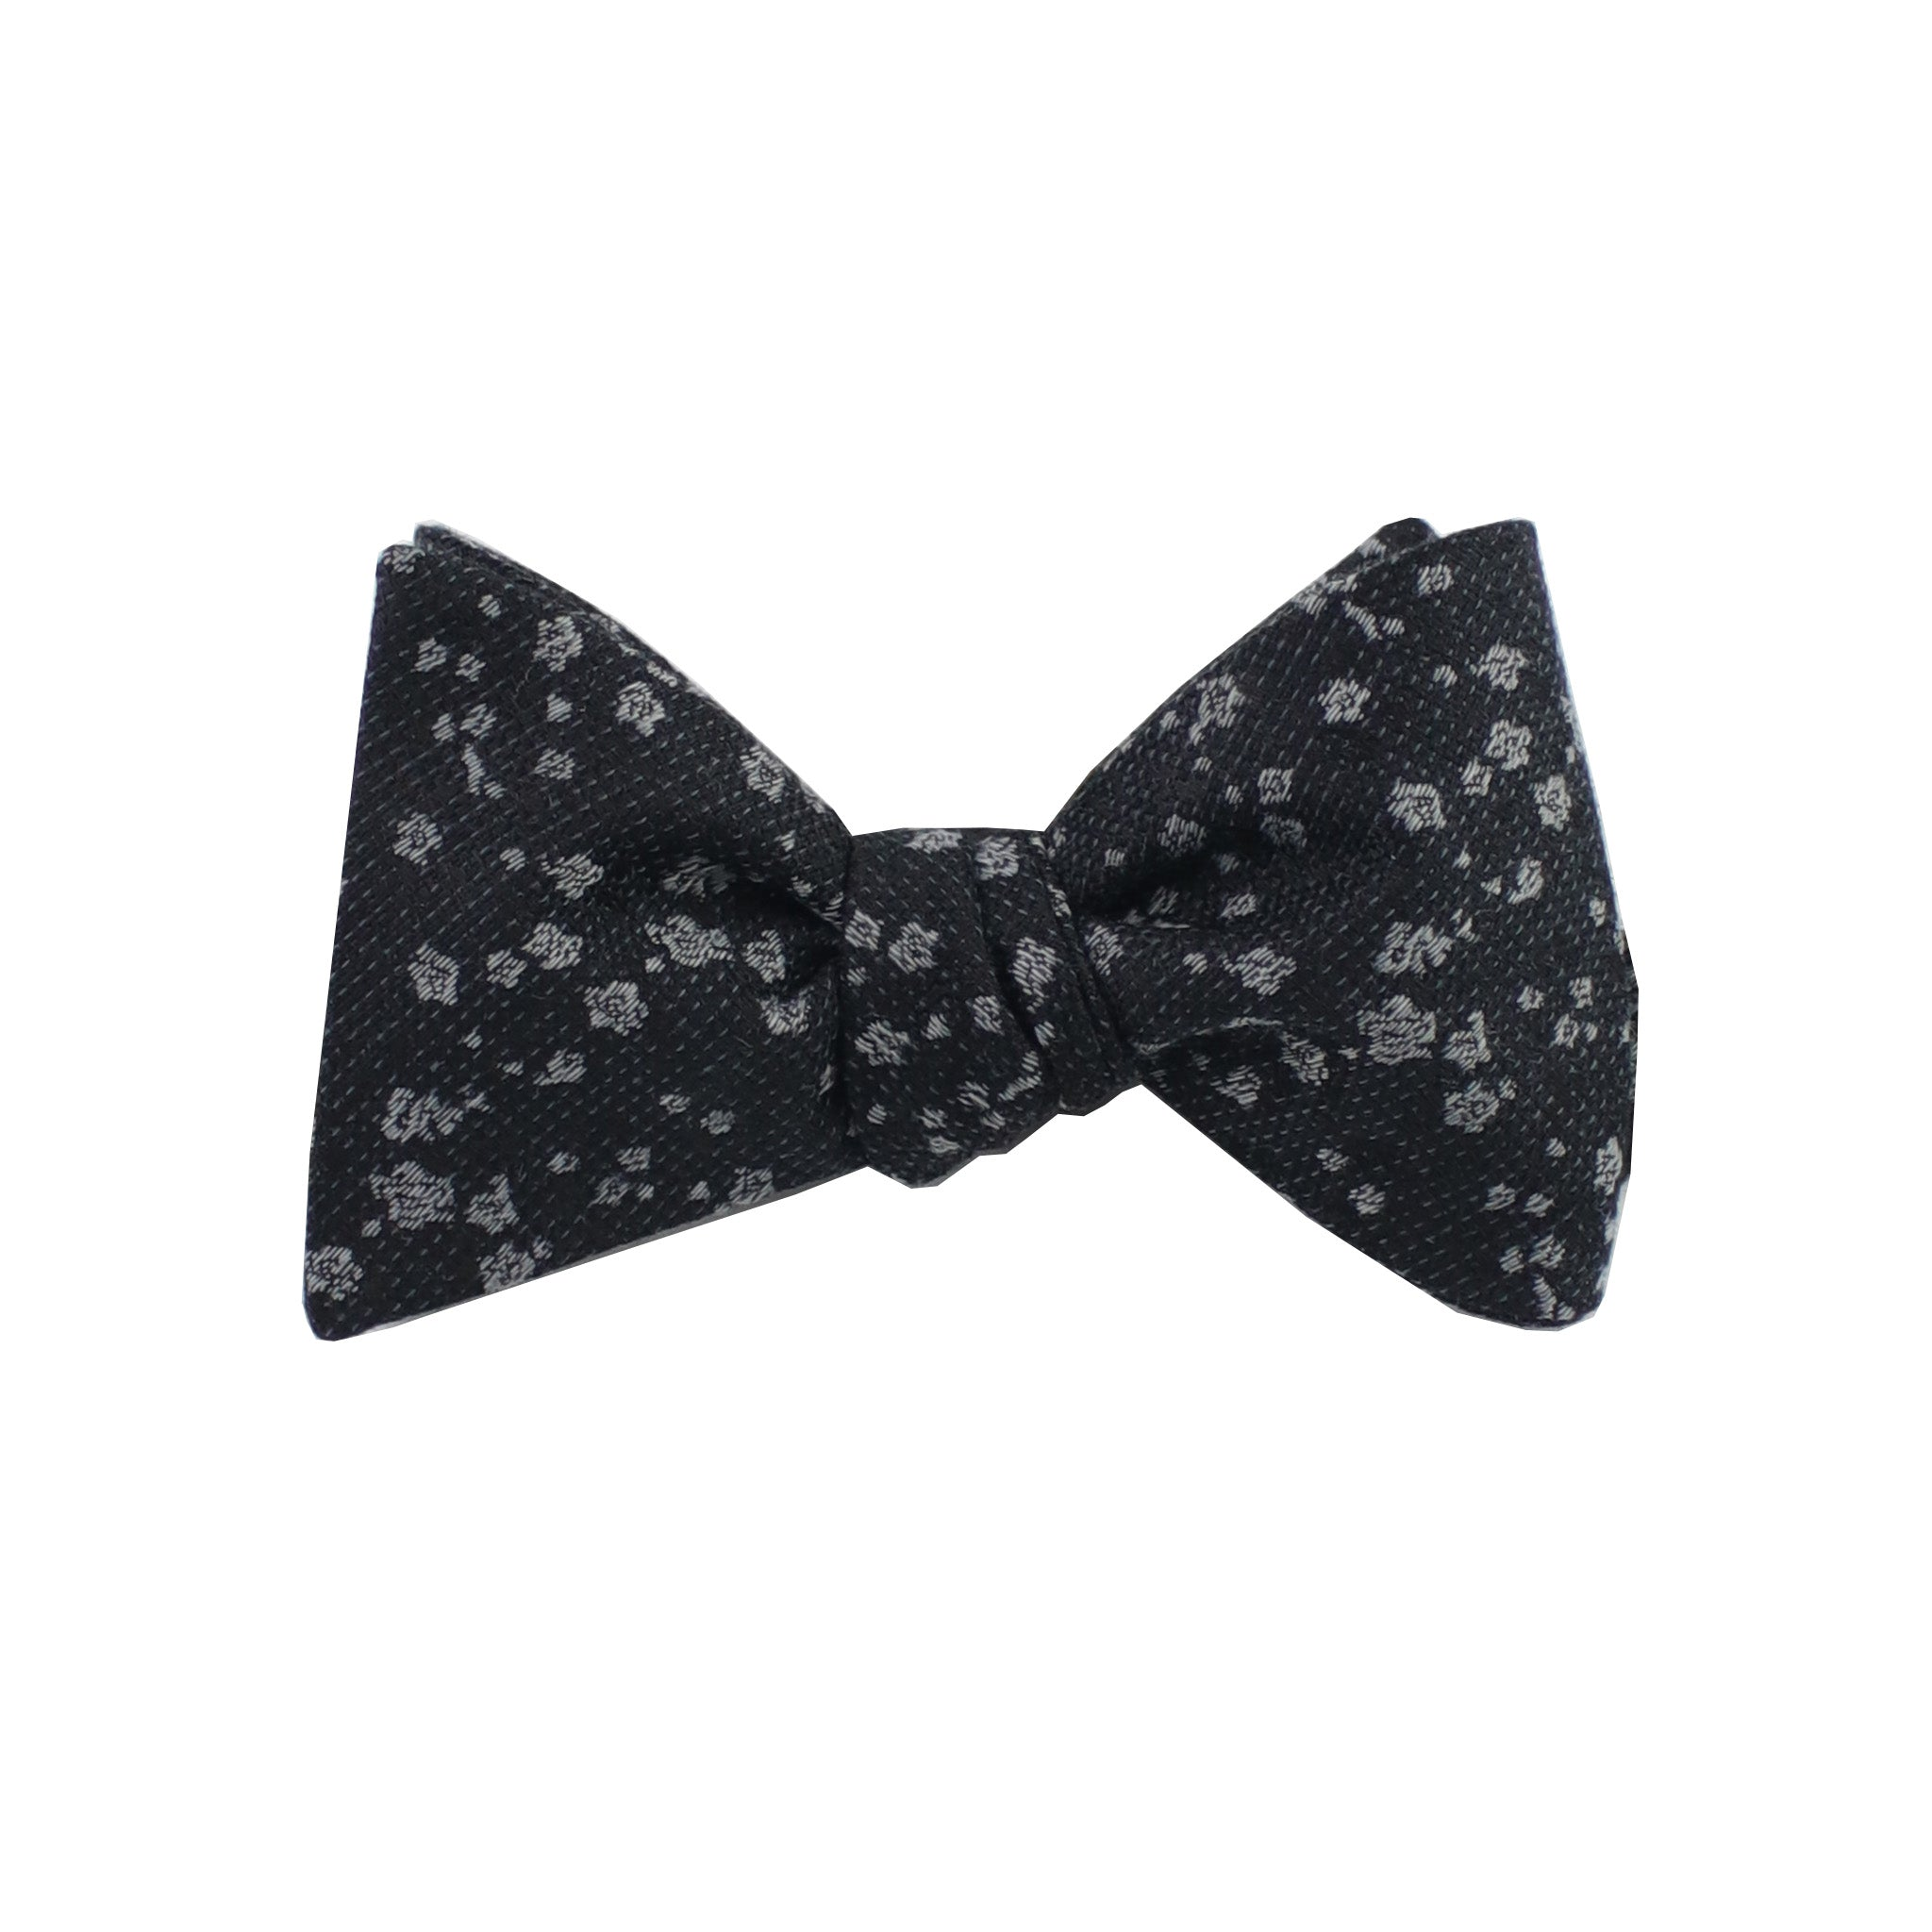 Black & Silver Floral Self Tie Bow Tie from DIBI